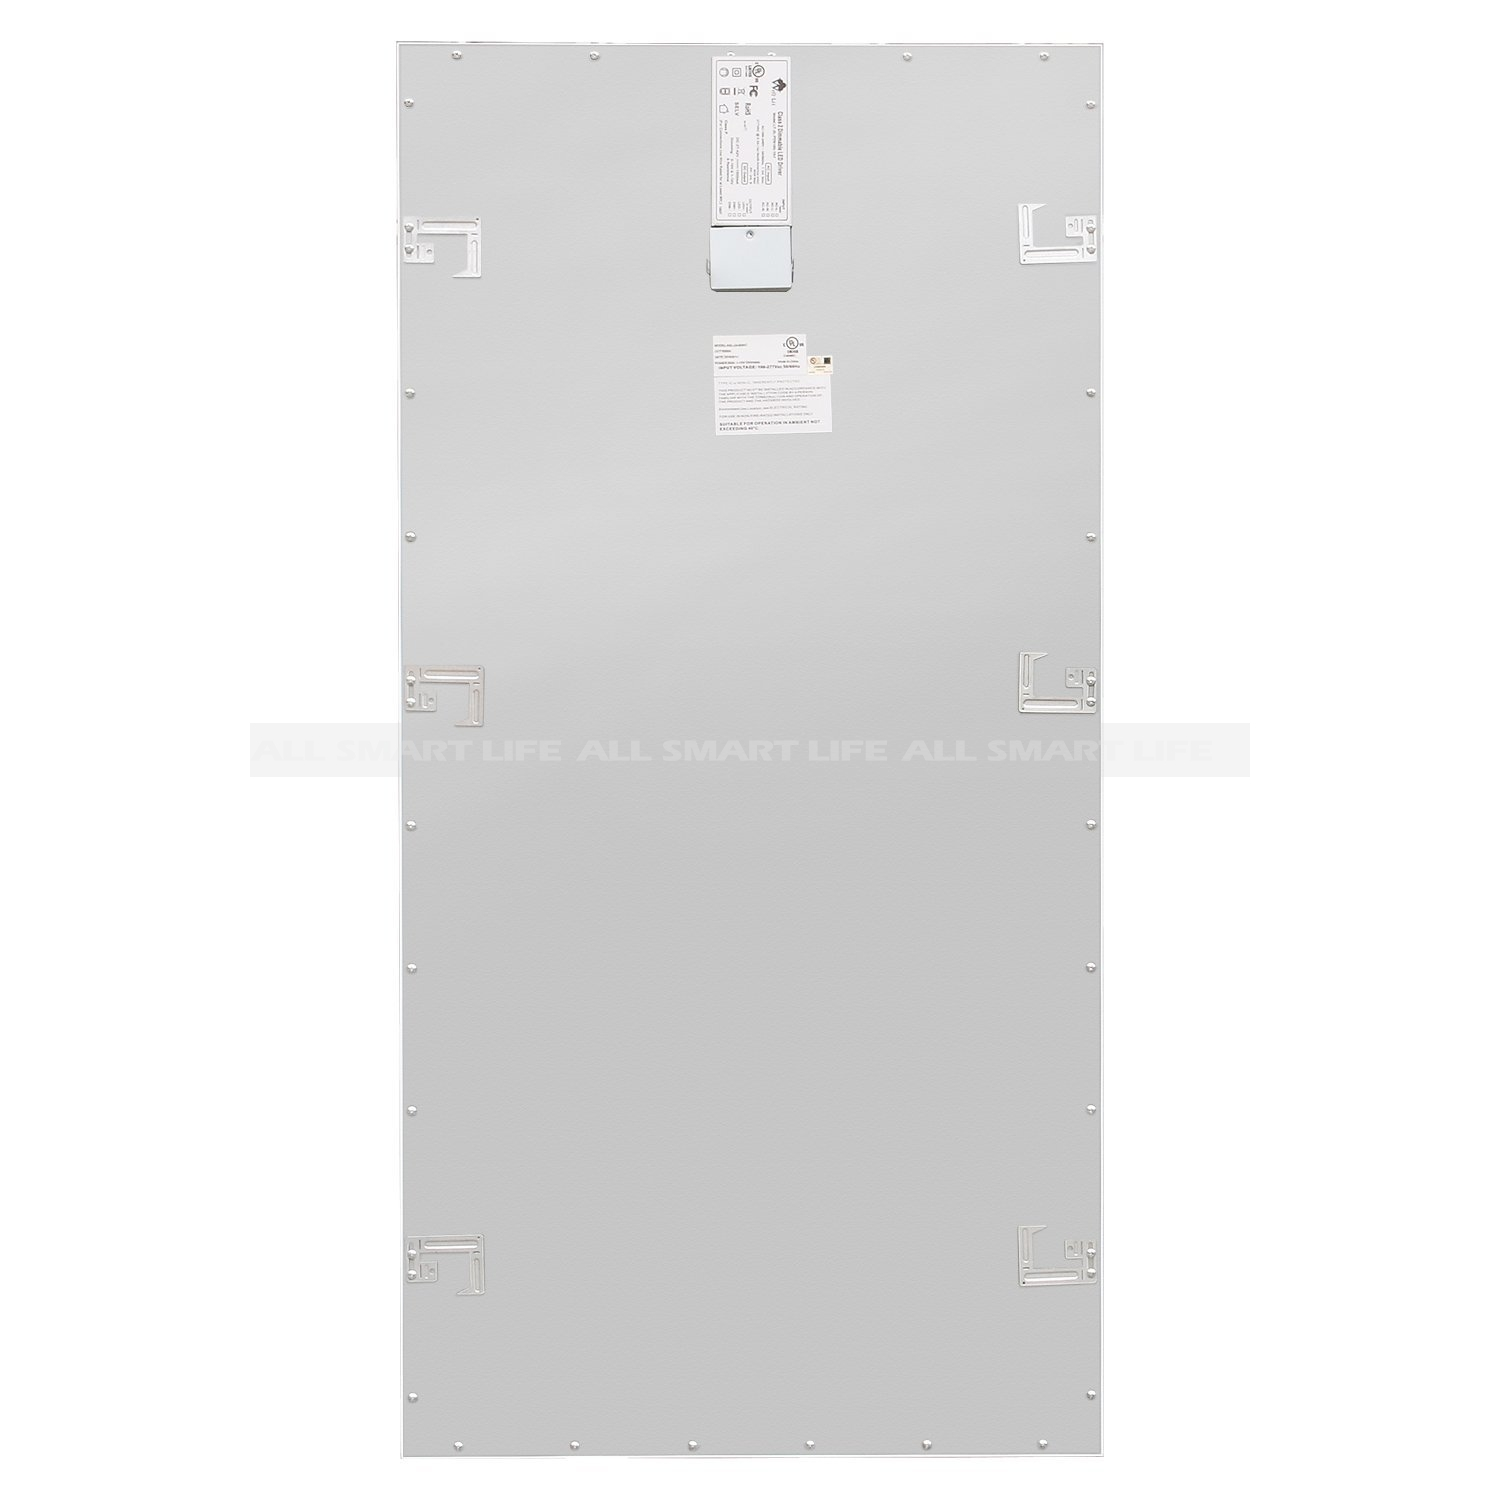 Led Flat Panel Light 2x4 Allsmartlife Fixture 10v Dimmer Wiring Diagram 60w Dimmable 4000kbright White 0 6215lumens 100 277vac Dlc Qualified And